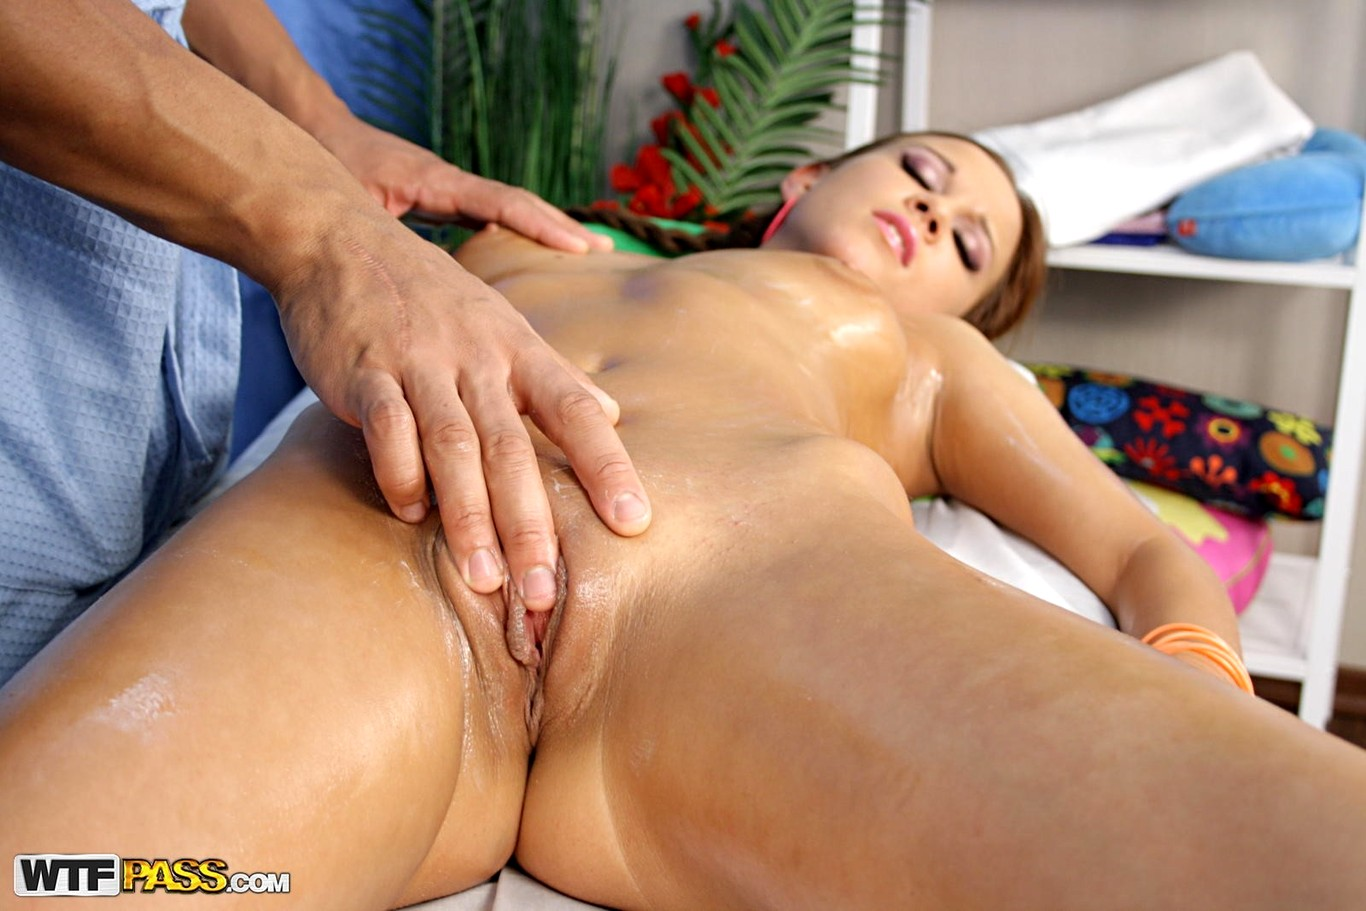 Naked girls tube massage sex video model